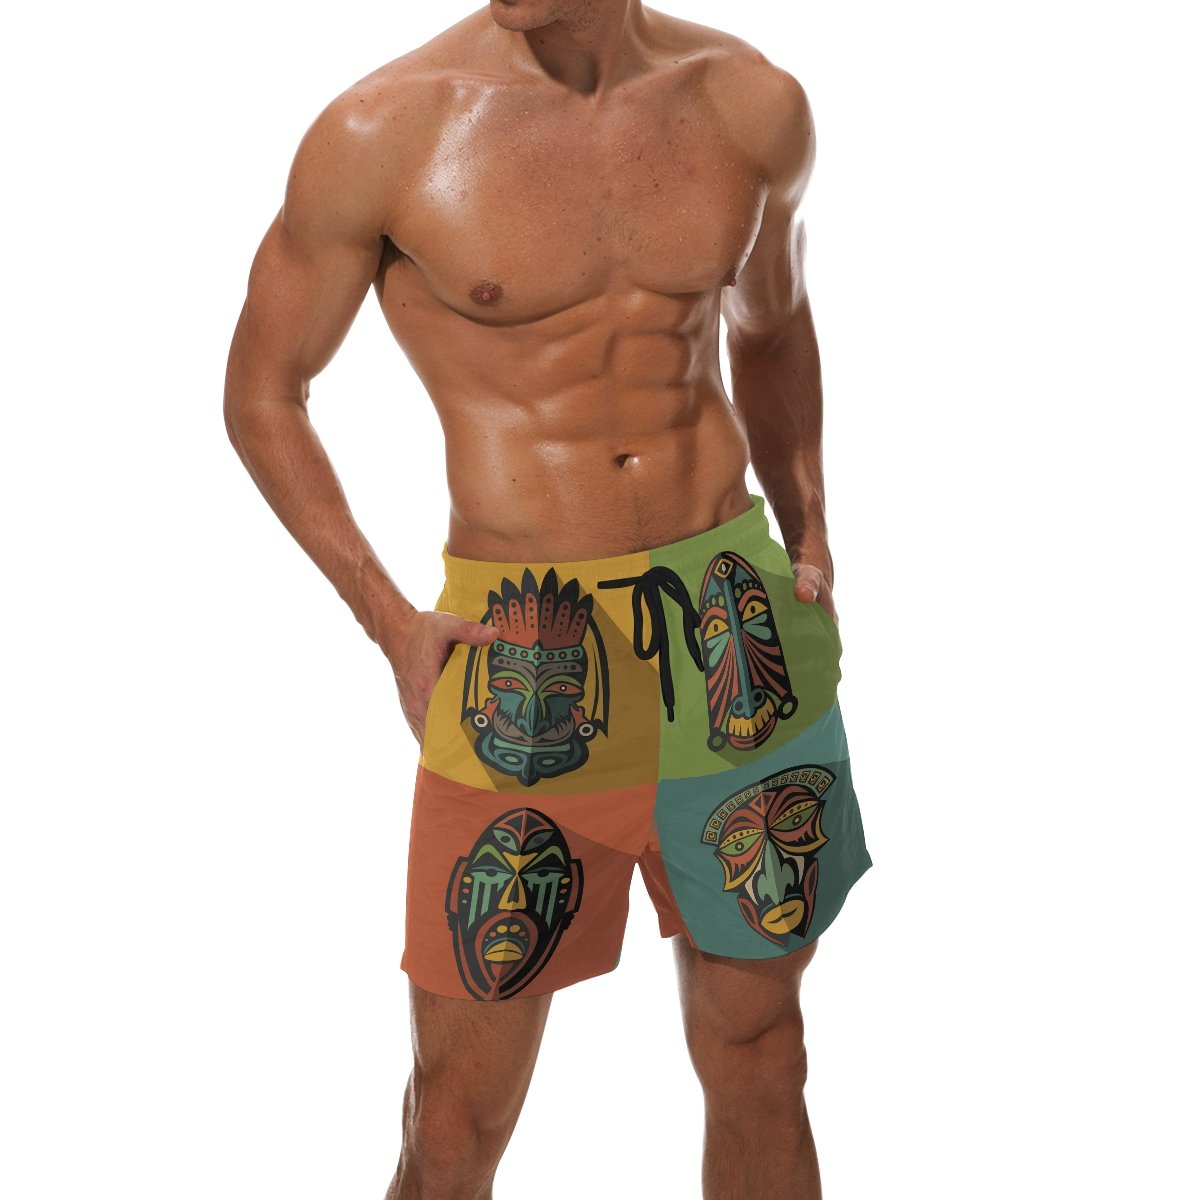 KEAKIA Mens Set of African Ethnic Tribal Masks Beach Board Shorts Quick Dry Swim Trunk